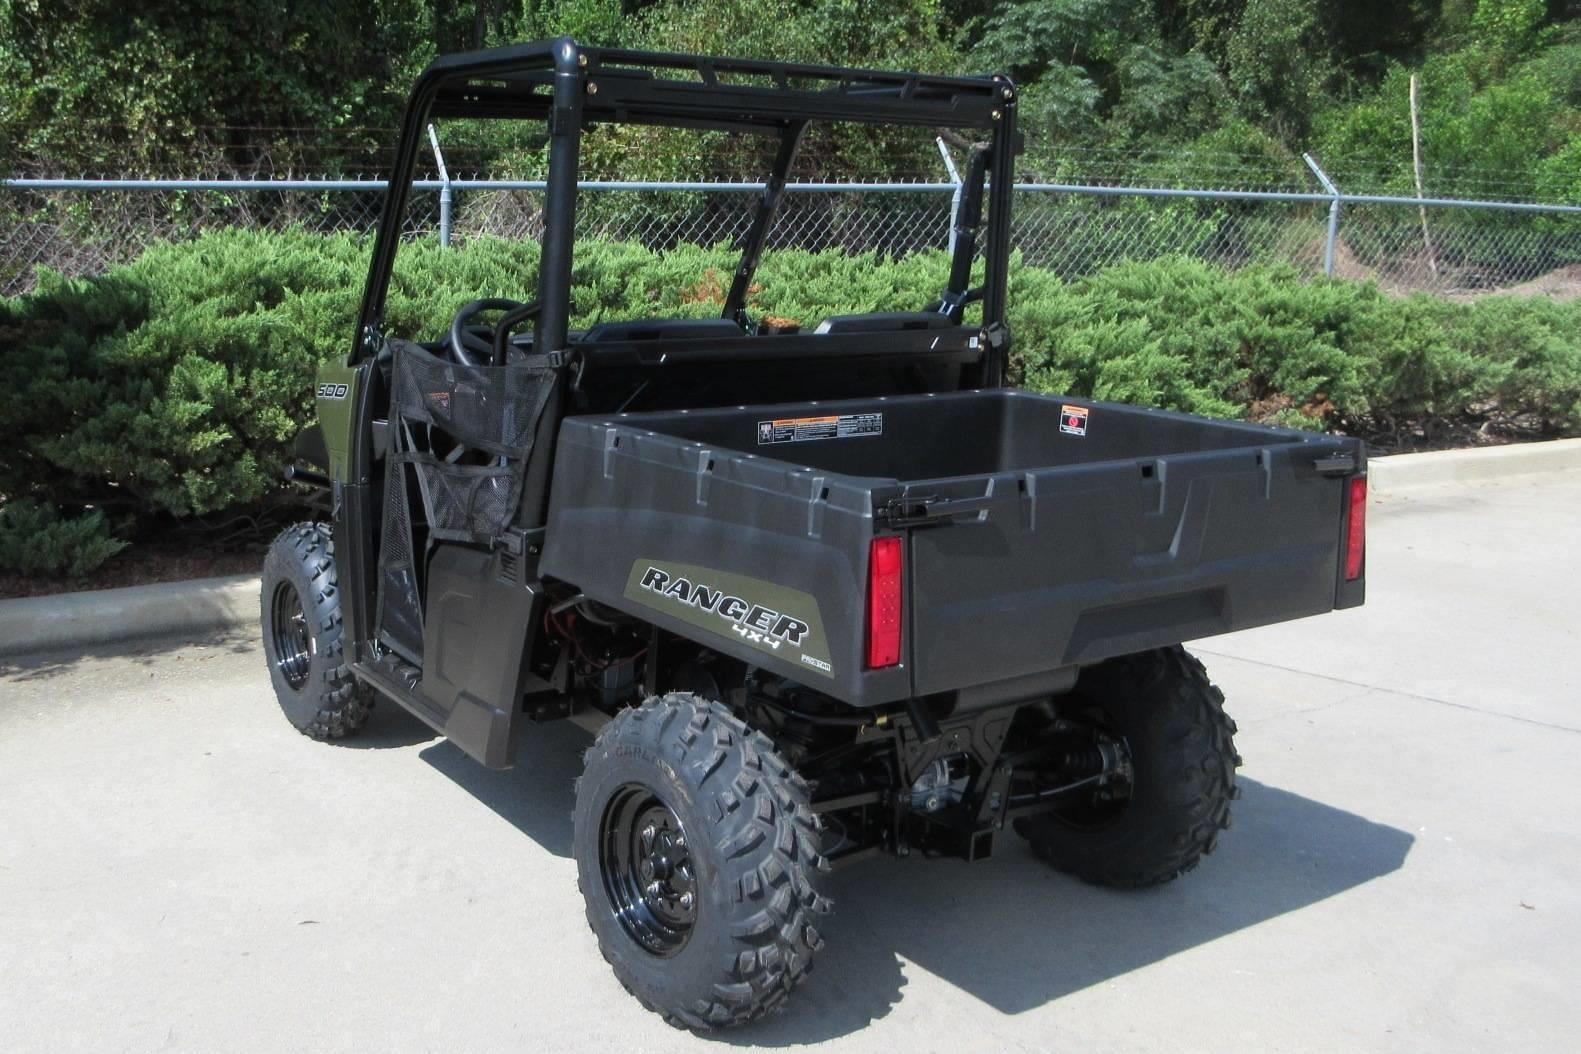 New Original Ranger 500 UTV 5